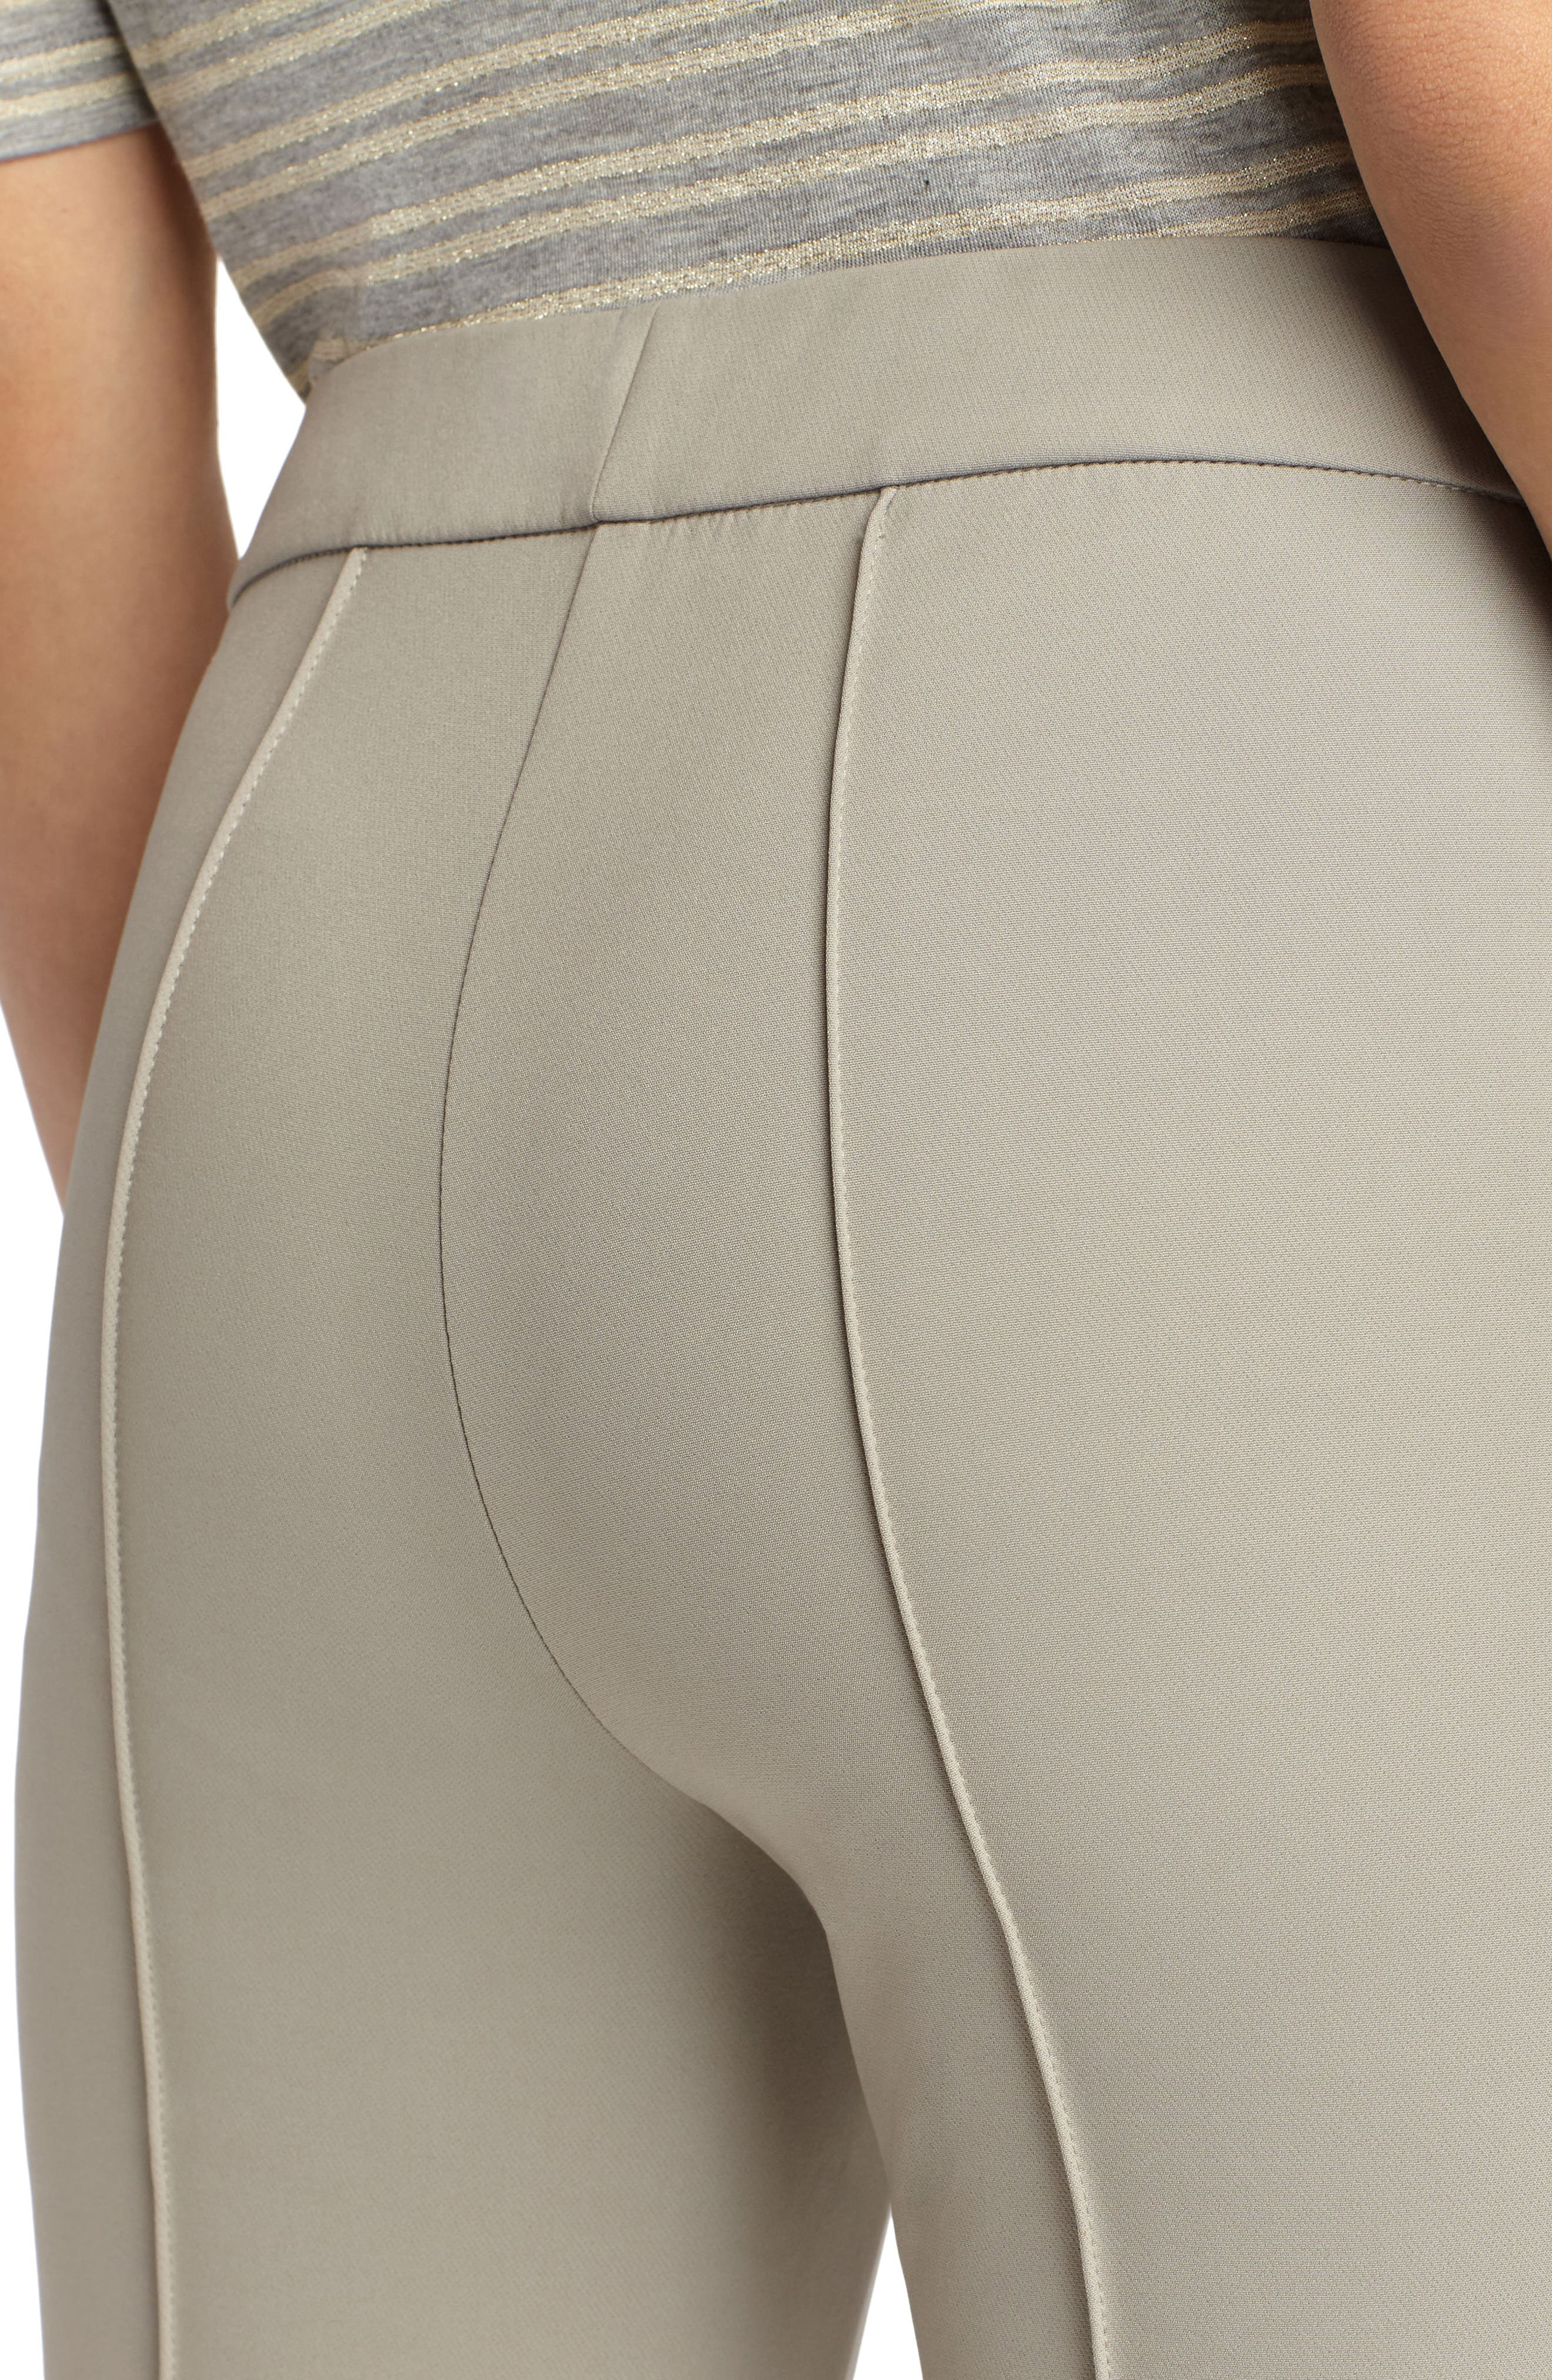 LAFAYETTE 148 NEW YORK, 'Gramercy' Acclaimed Stretch Pants, Alternate thumbnail 6, color, PARTRIDGE